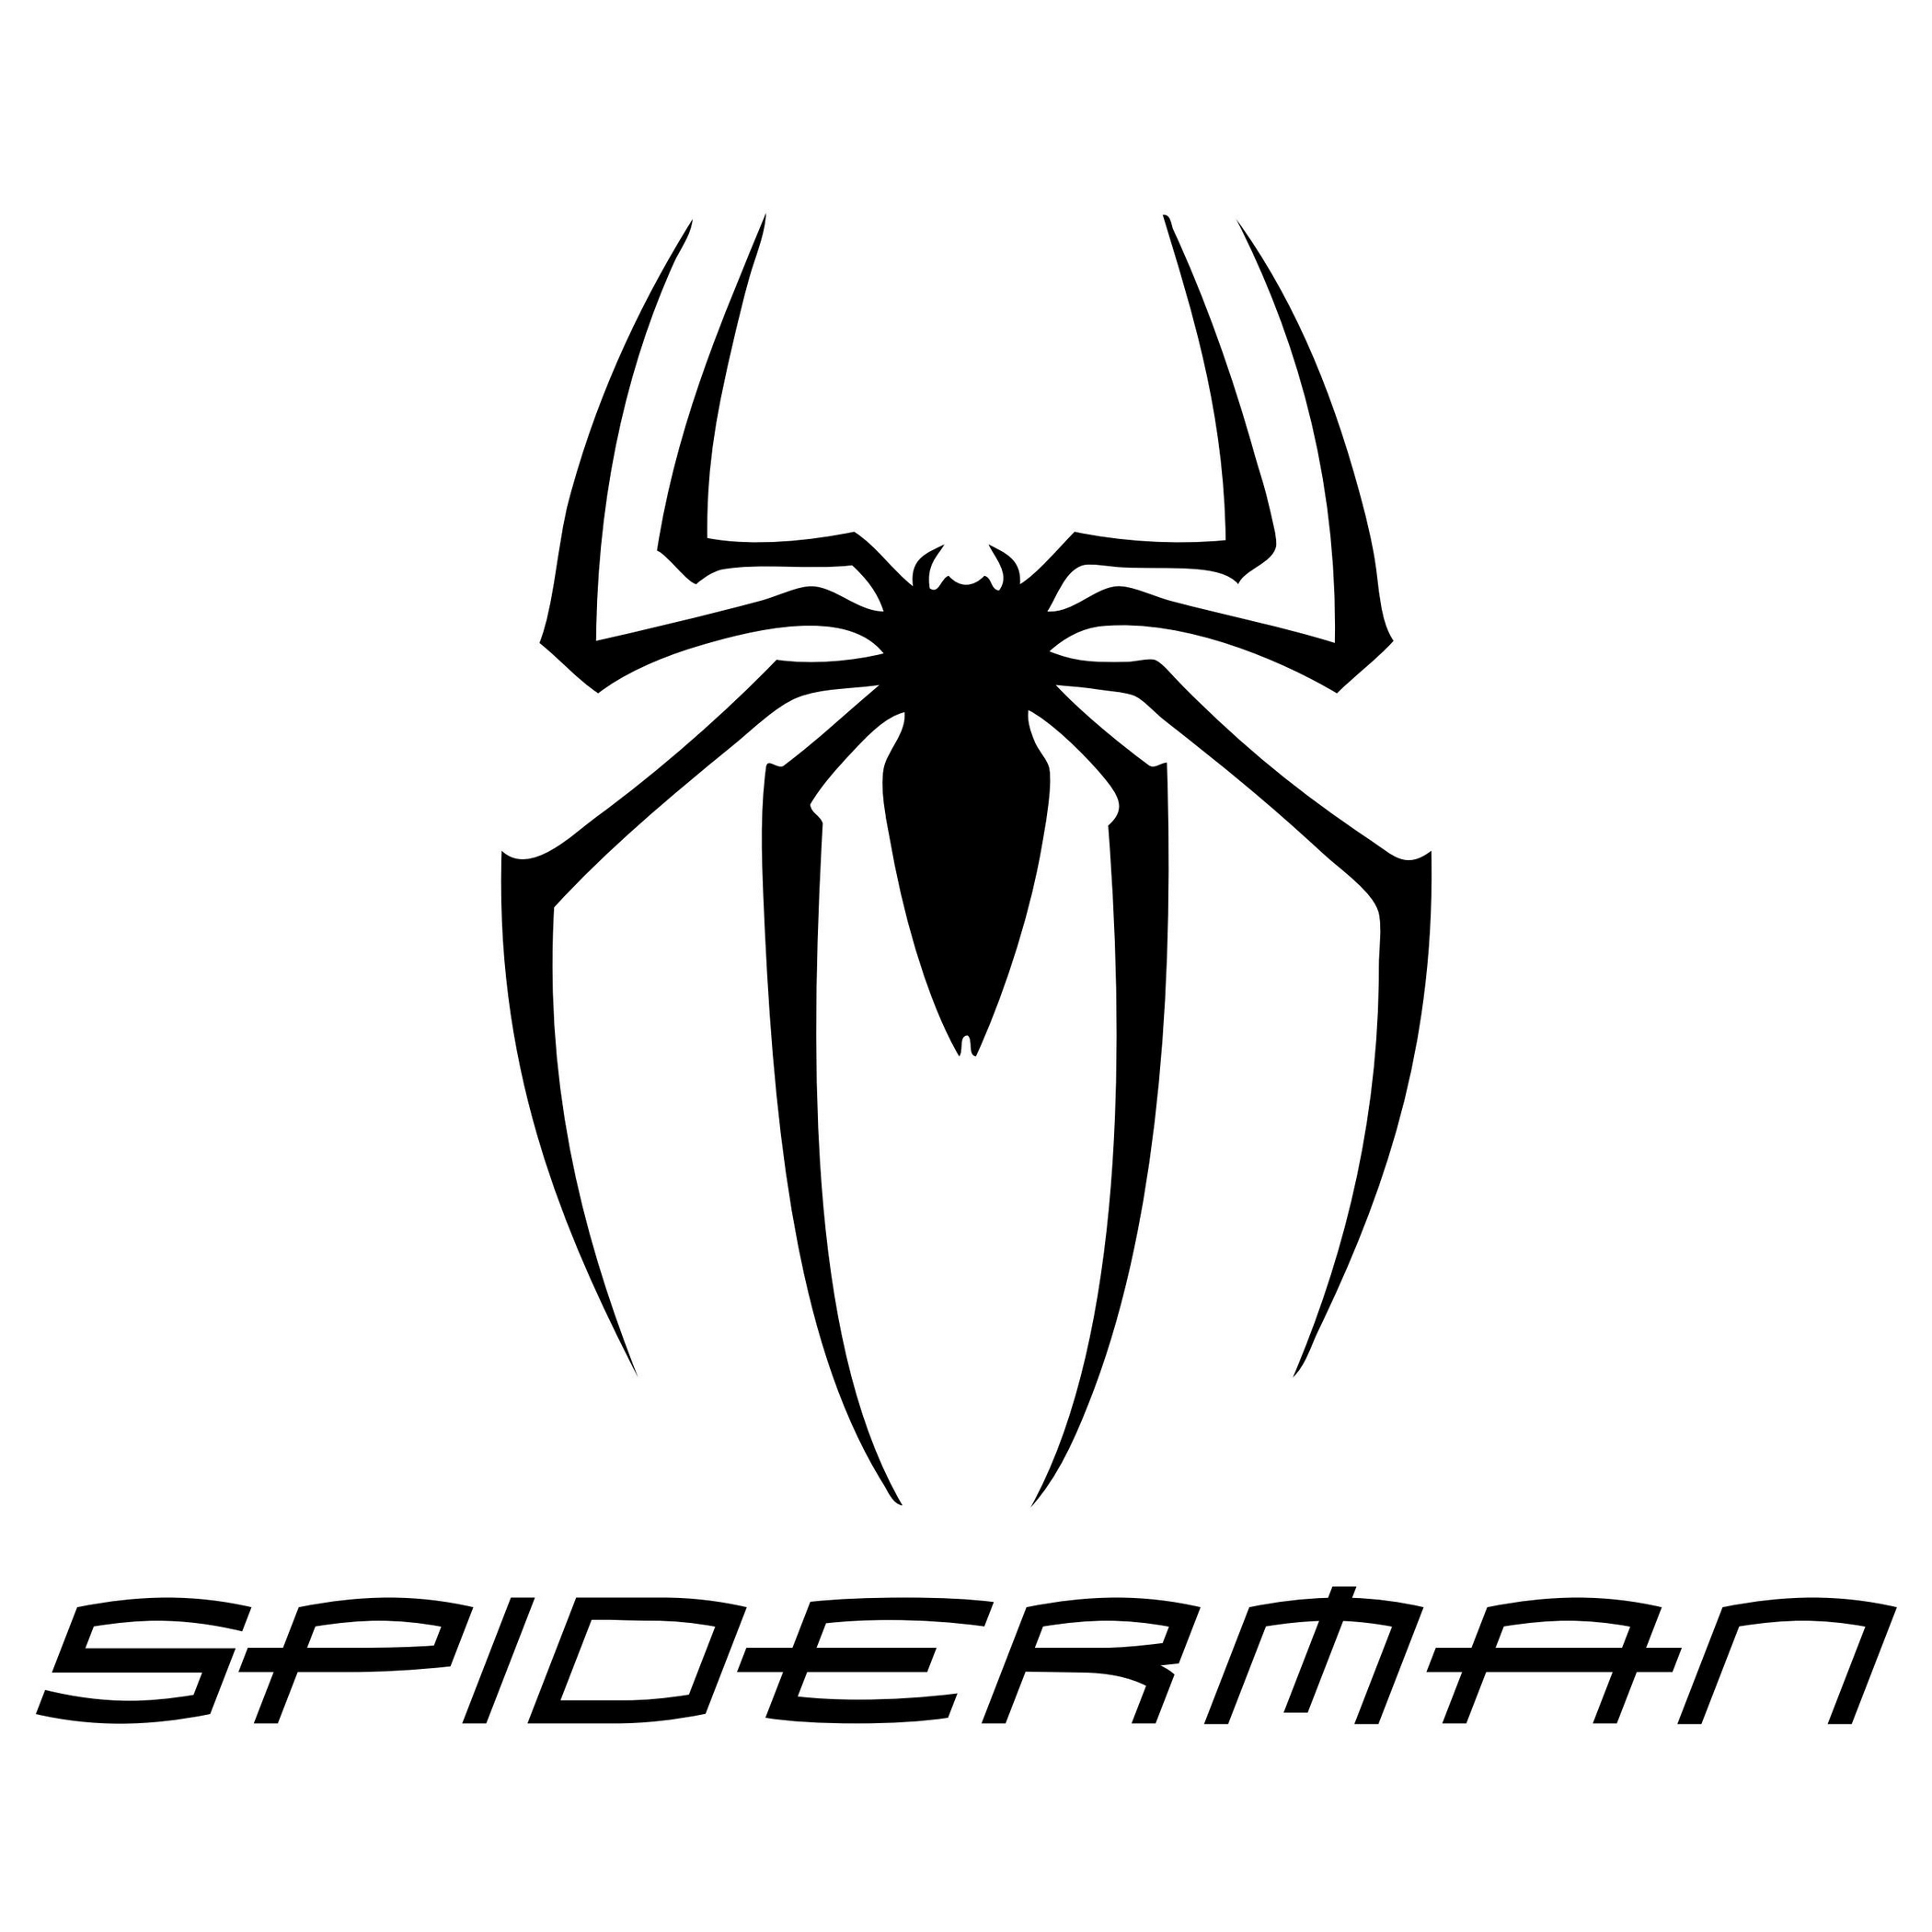 Spiderman clipart arachnid Spider Man Zone Silhouette Cliparts